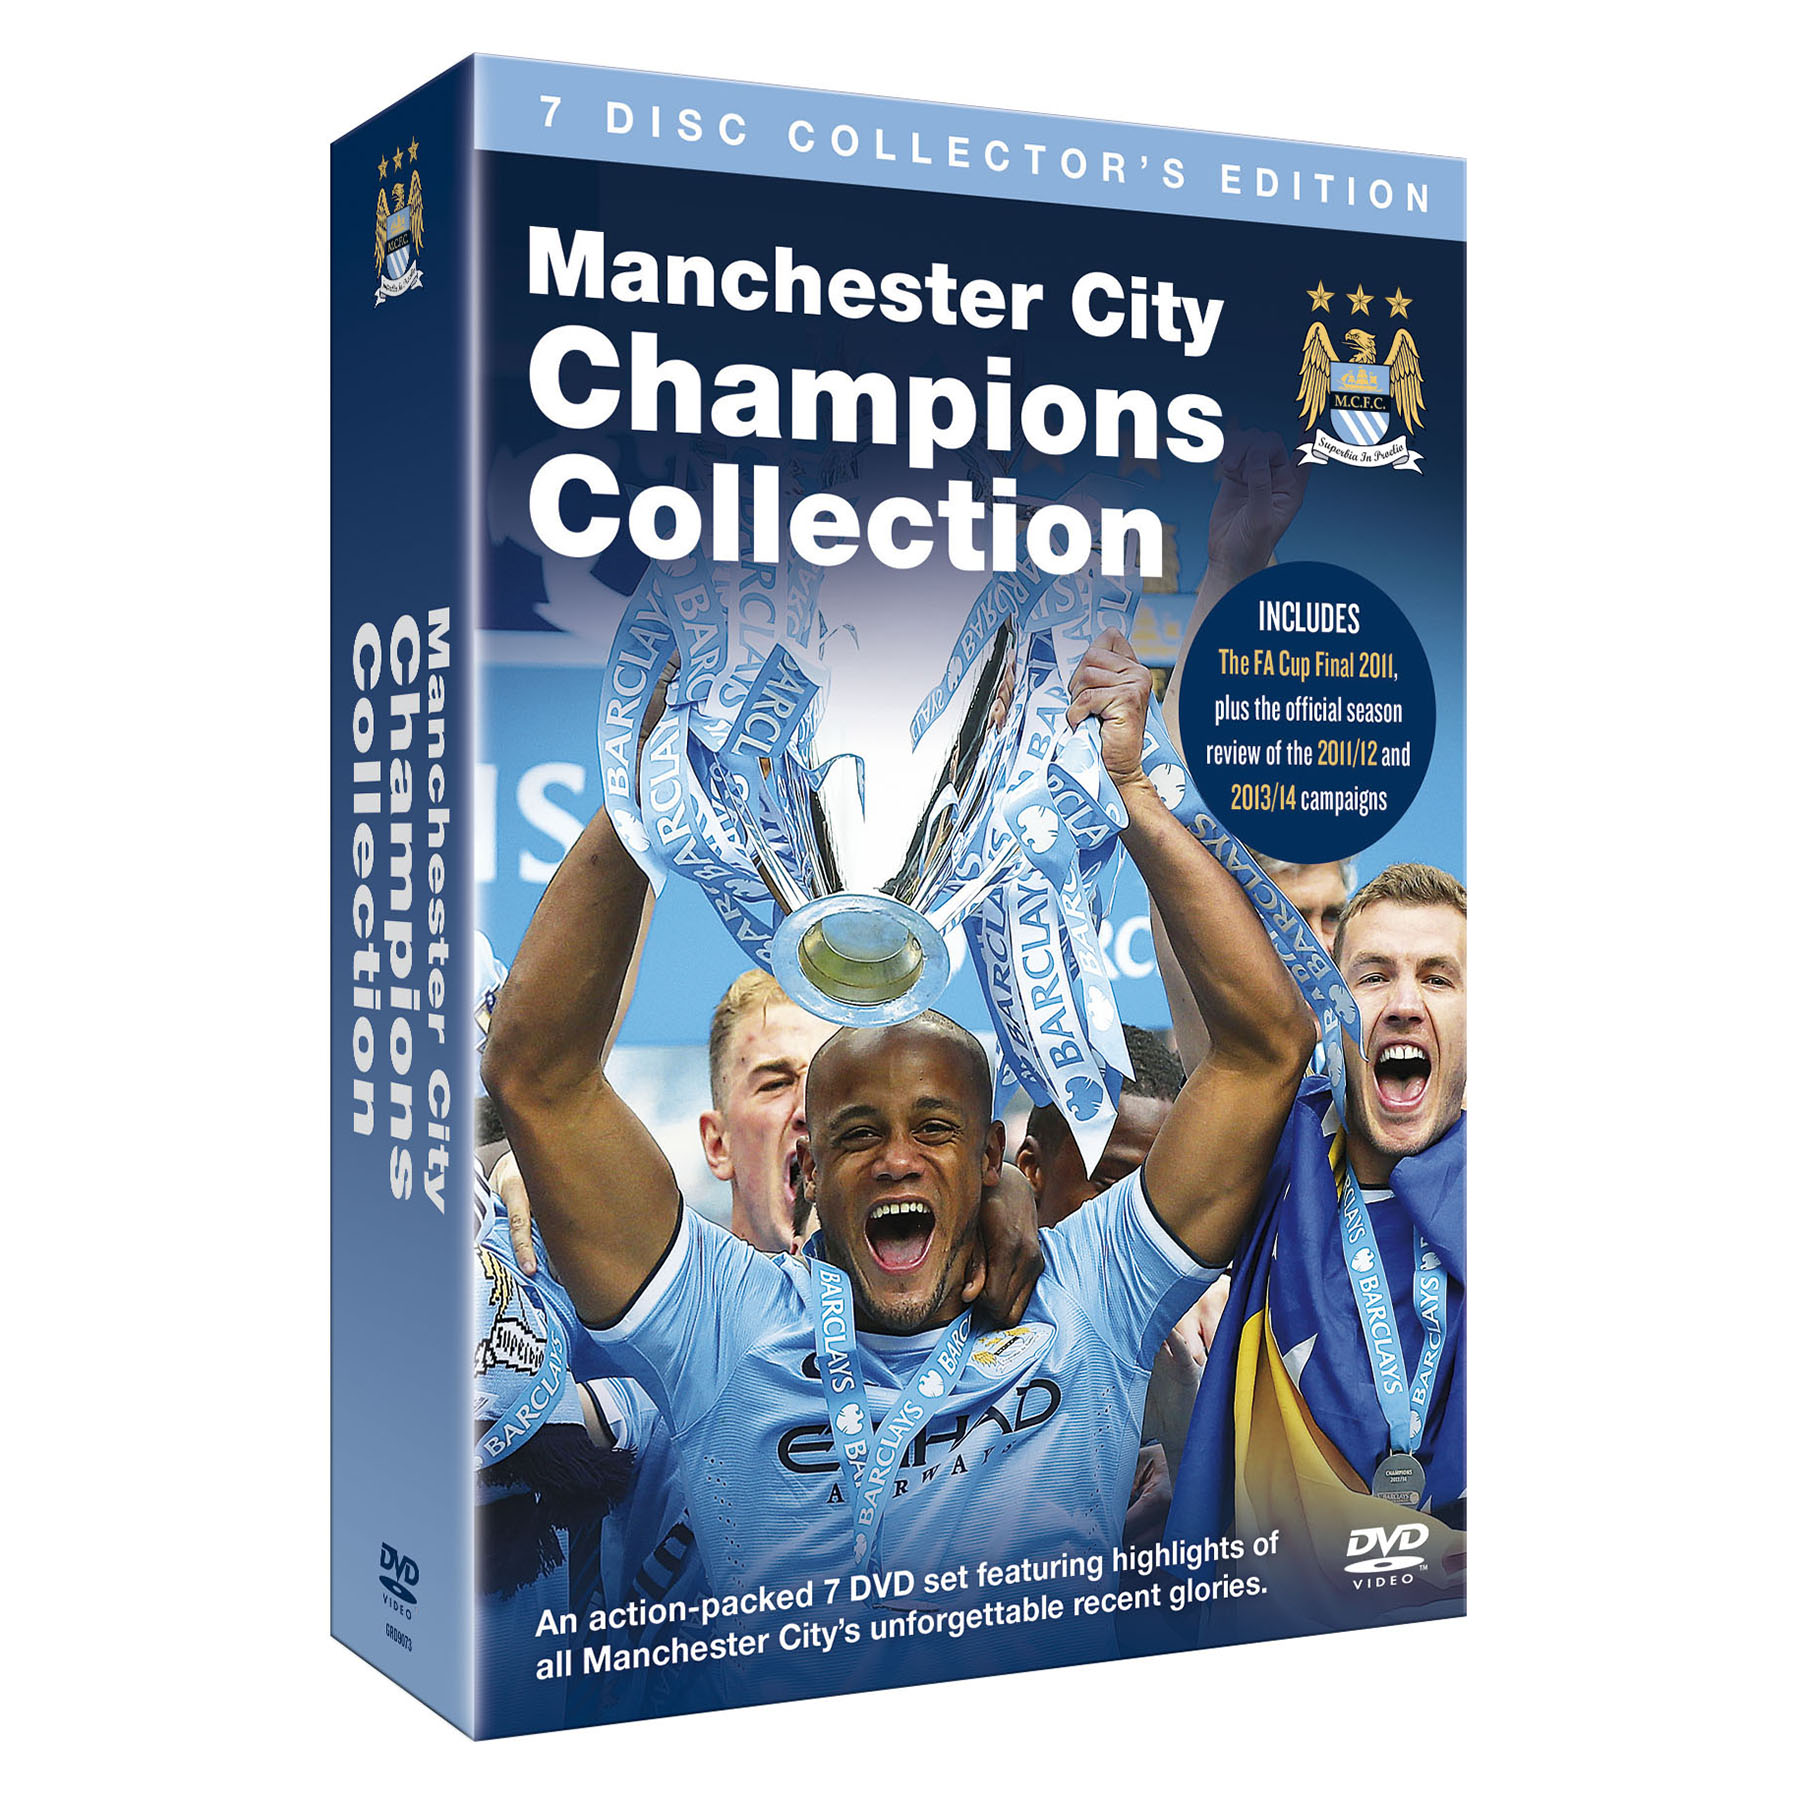 Manchester City Champions Collection DVD Boxset